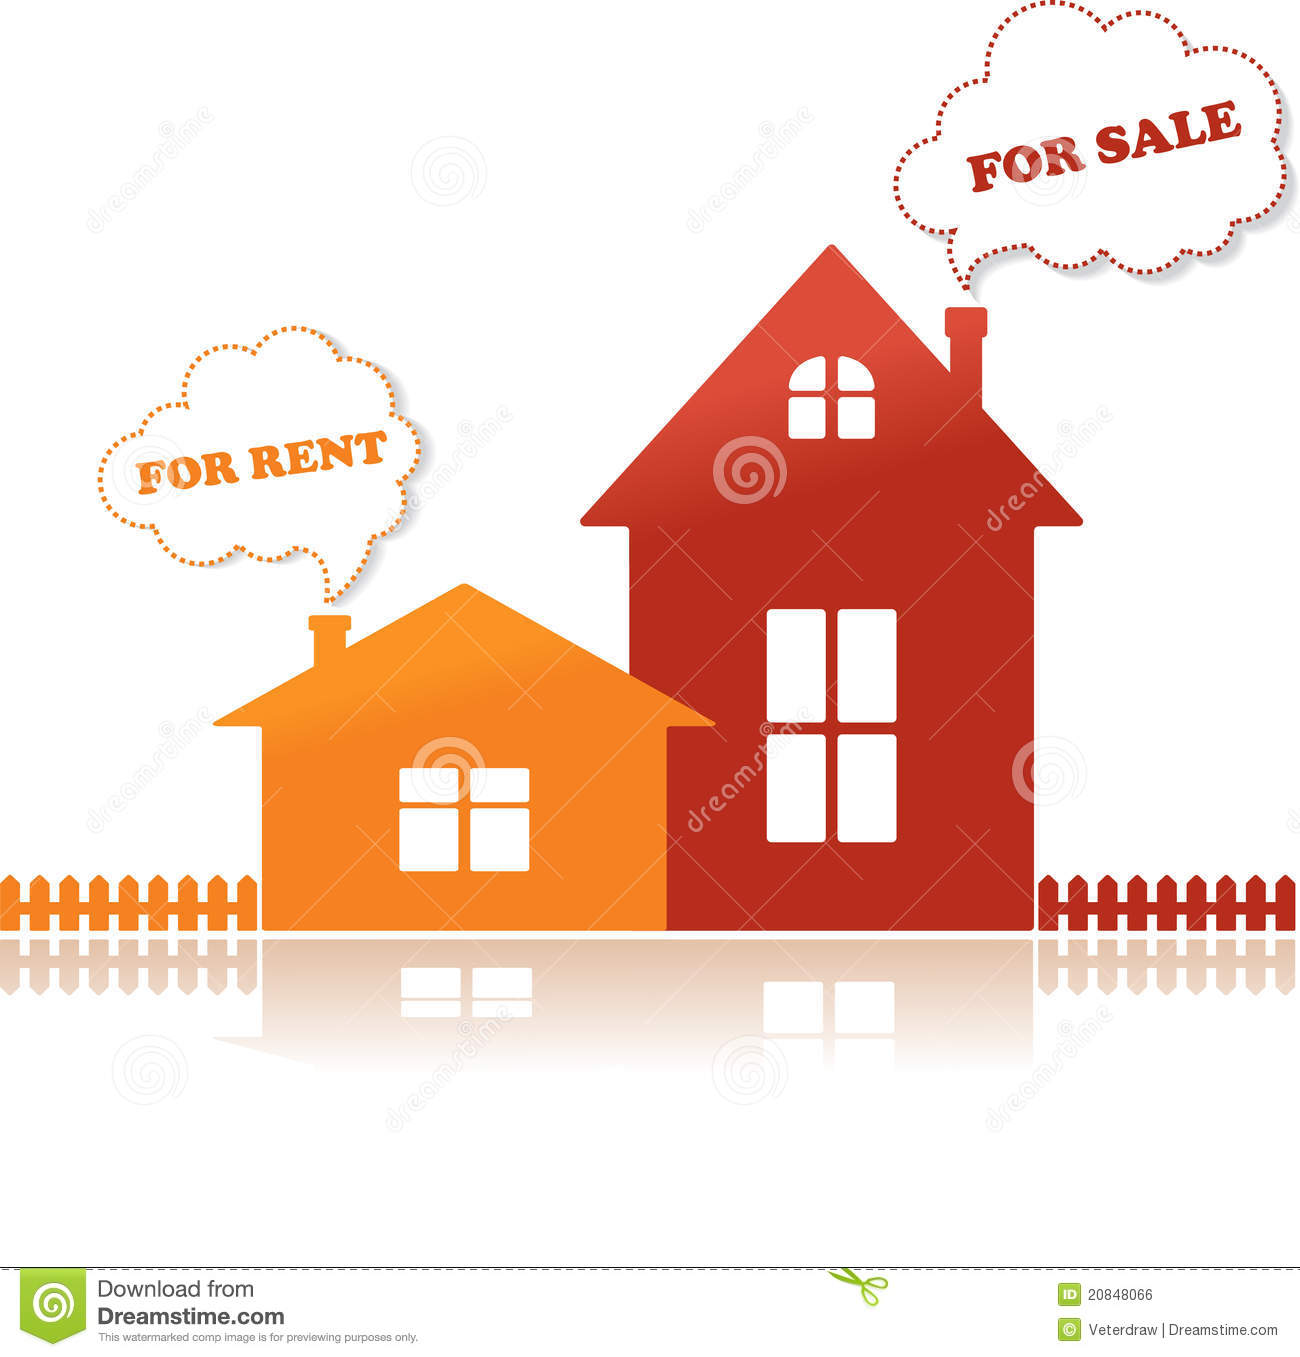 Free Houses For Rent: Houses For Sale And For Rent, Vector Illustration Royalty